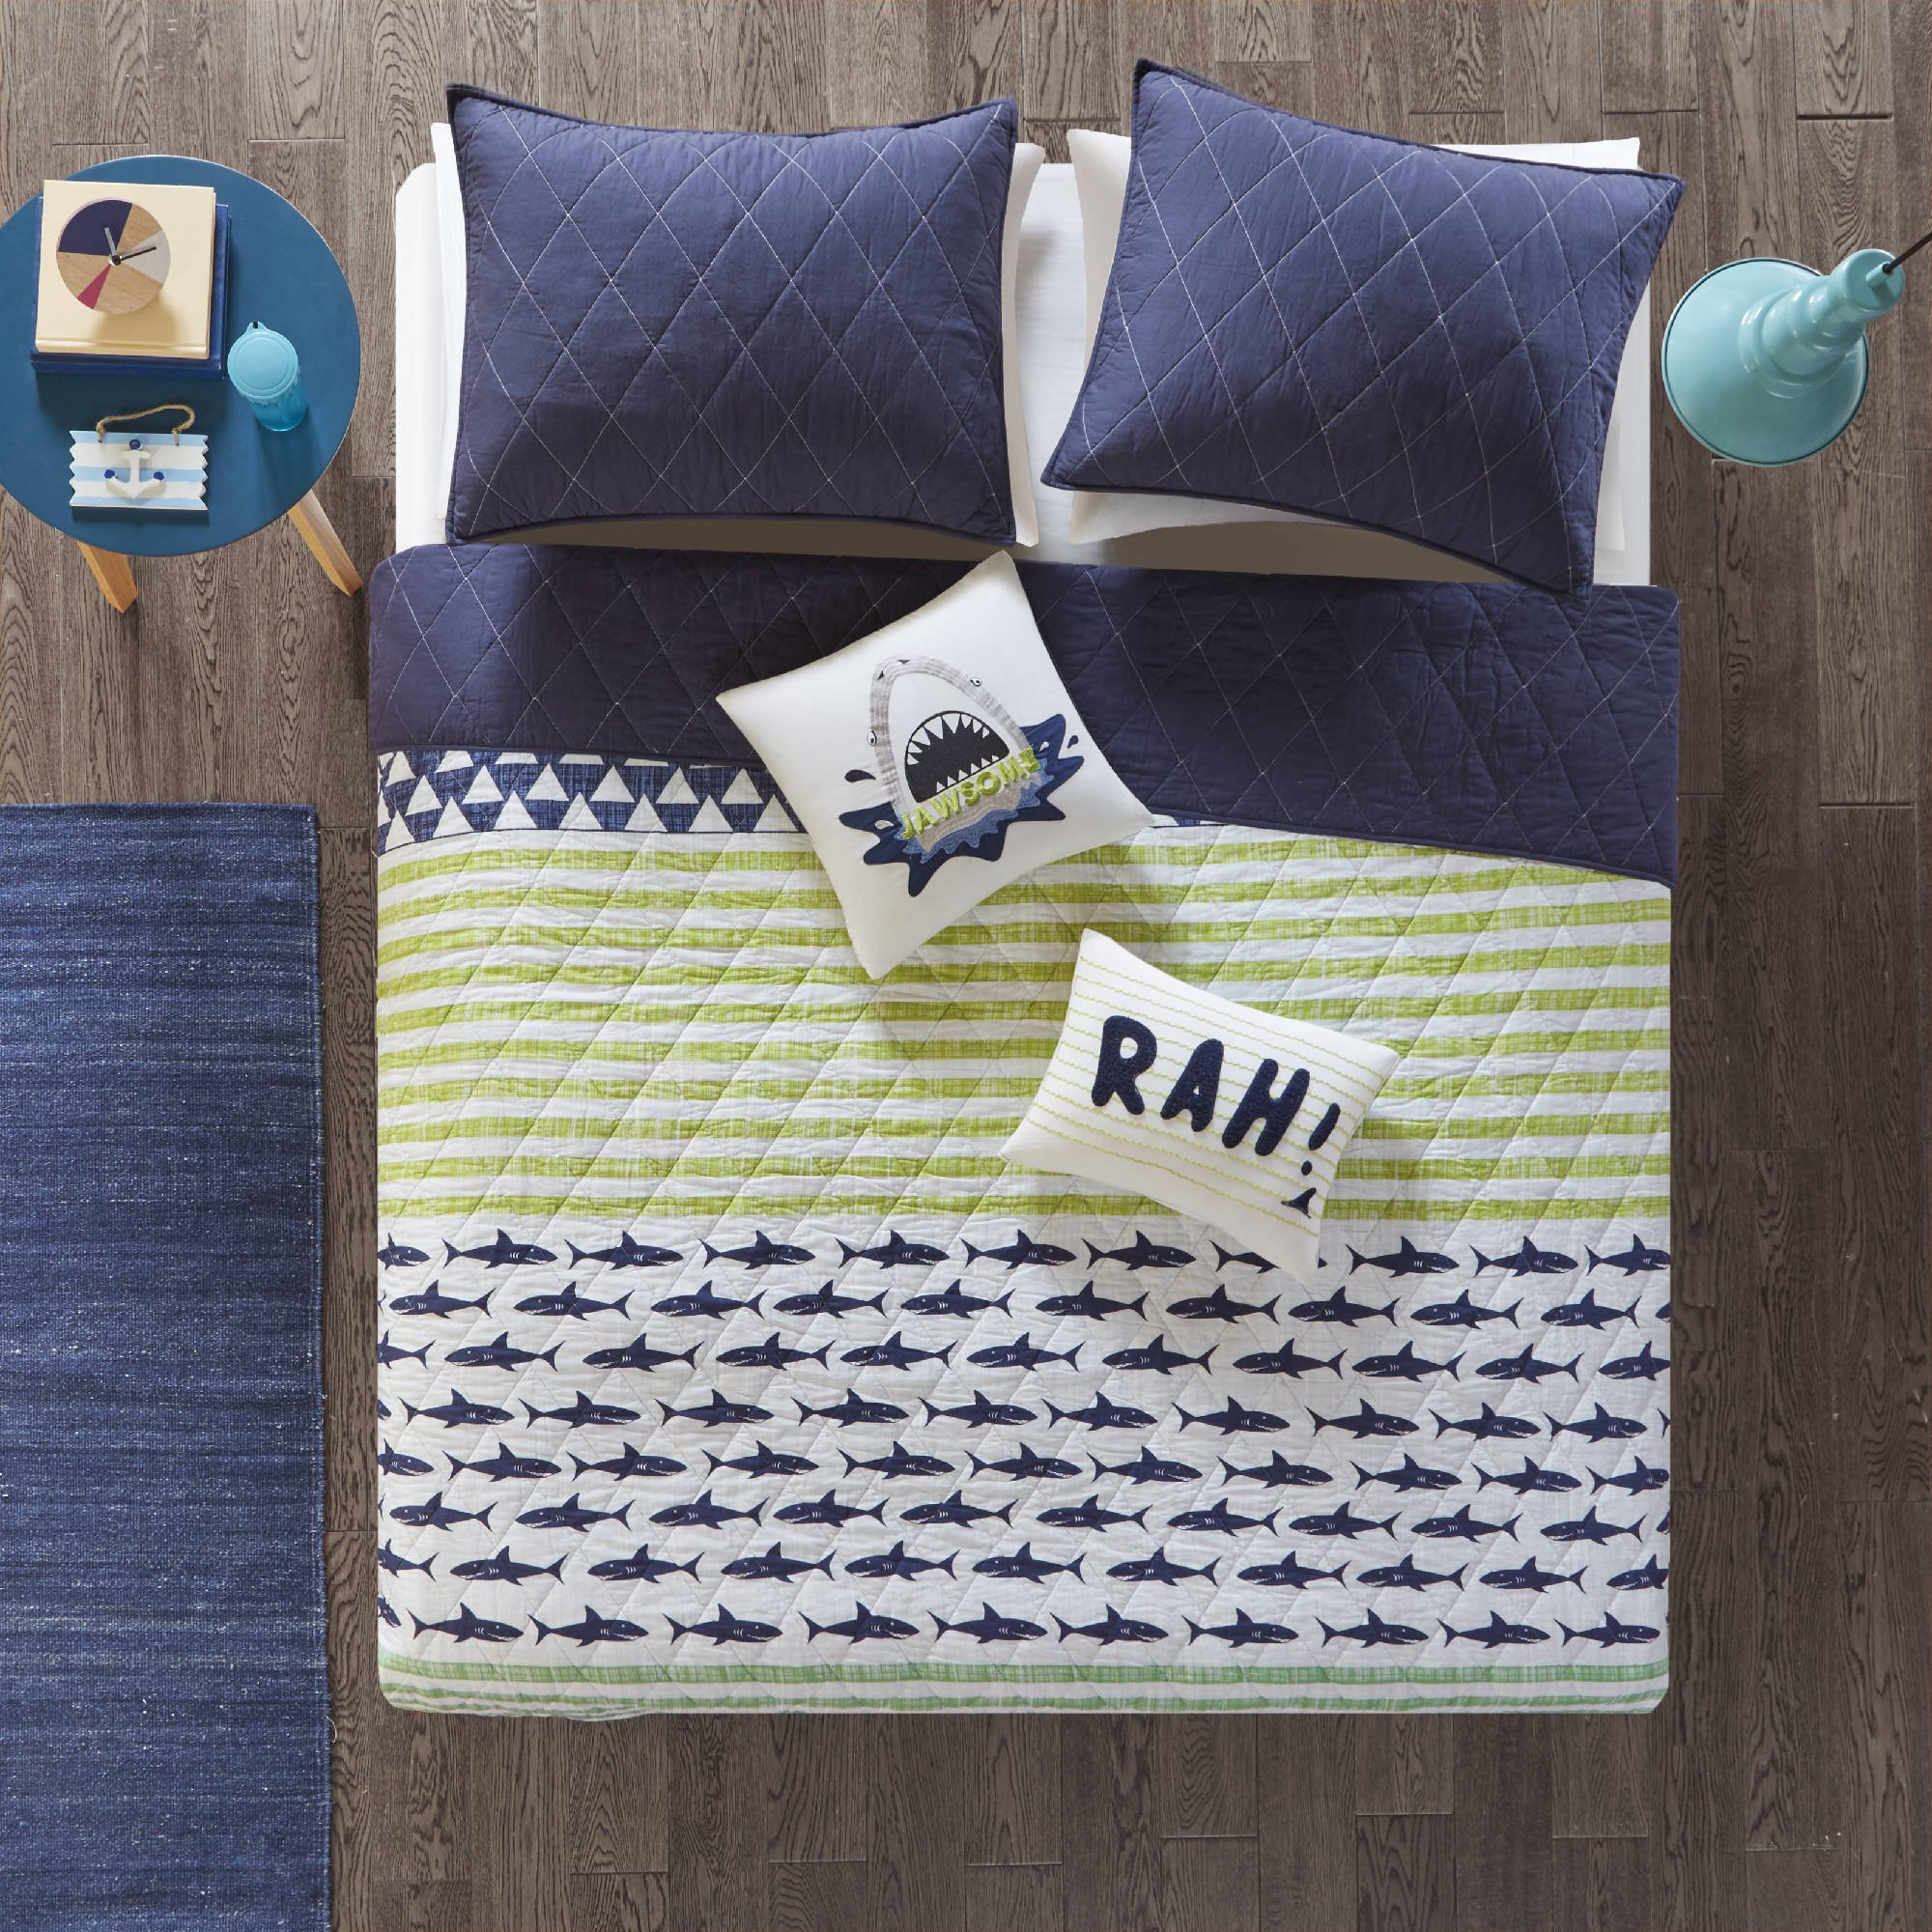 5 Piece Kids Navy Blue Green Shark Themed Coverlet Full Queen Set, Deep Sea Predator Bedding Marine Life Under The Water Animal Quilted Pattern Ocean Fish Stripes Light Grey, Reverse Solid Cotton